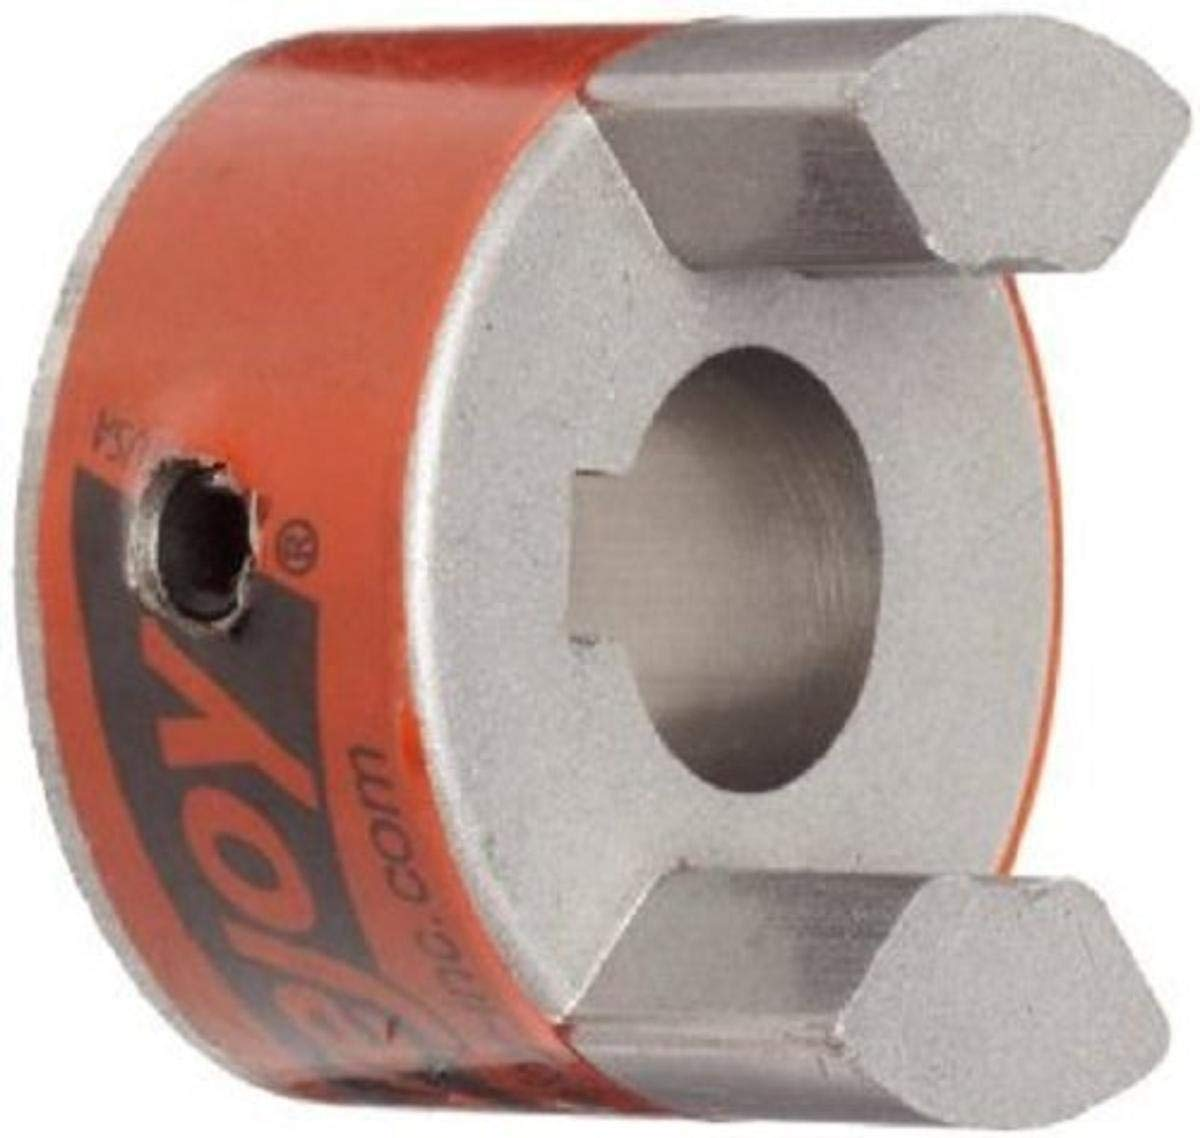 Lovejoy 49706 Size AL050 Jaw Coupling Hub 1.08 OD Aluminum Inch 0.125 x 0.063 Keyway 0.62 Length Through Bore 0.5 Bore